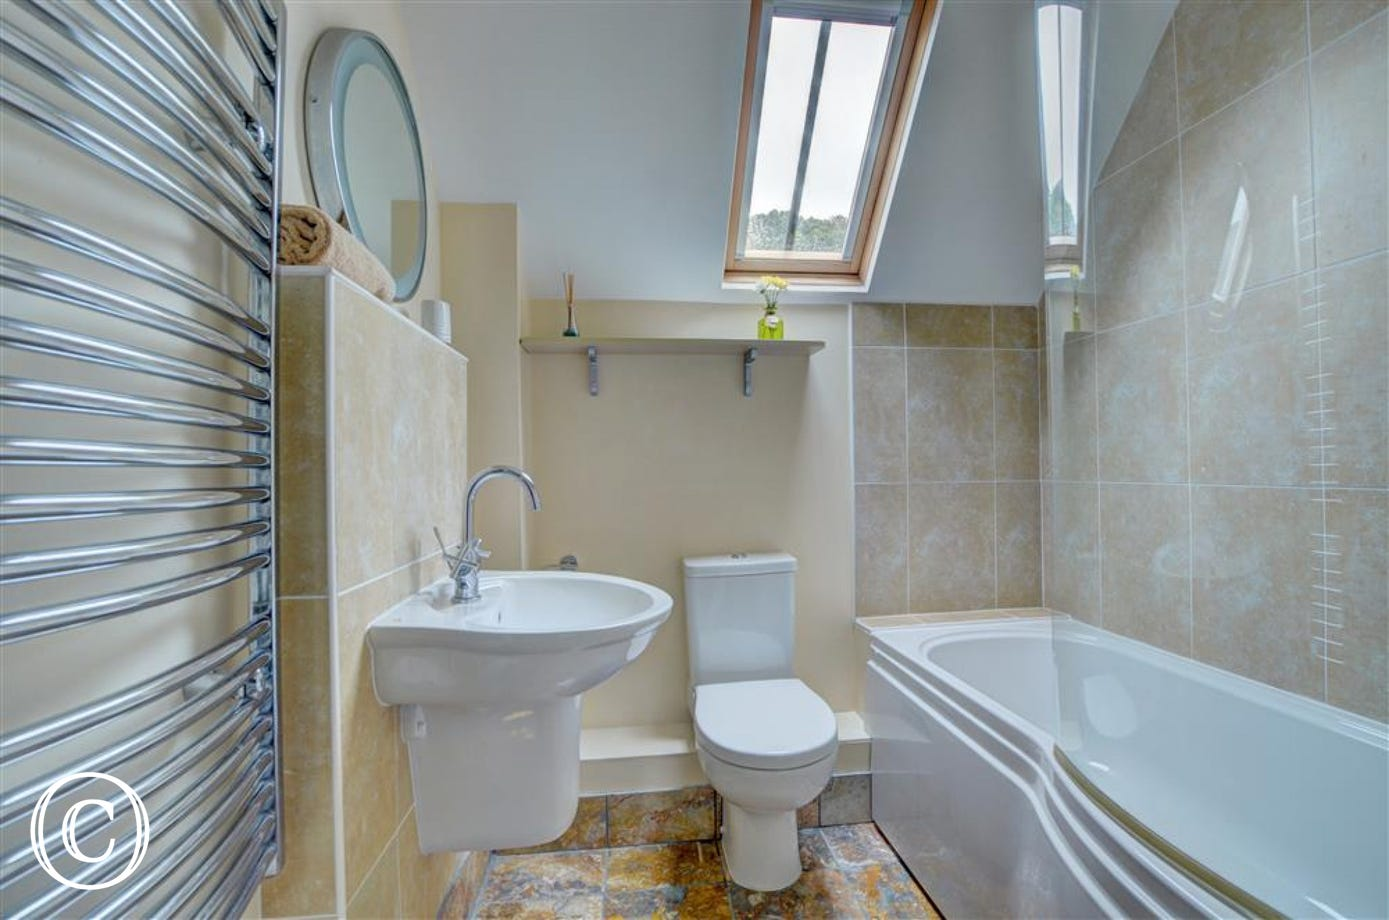 The contemporary bathroom has underfloor heating and a heated towel rail